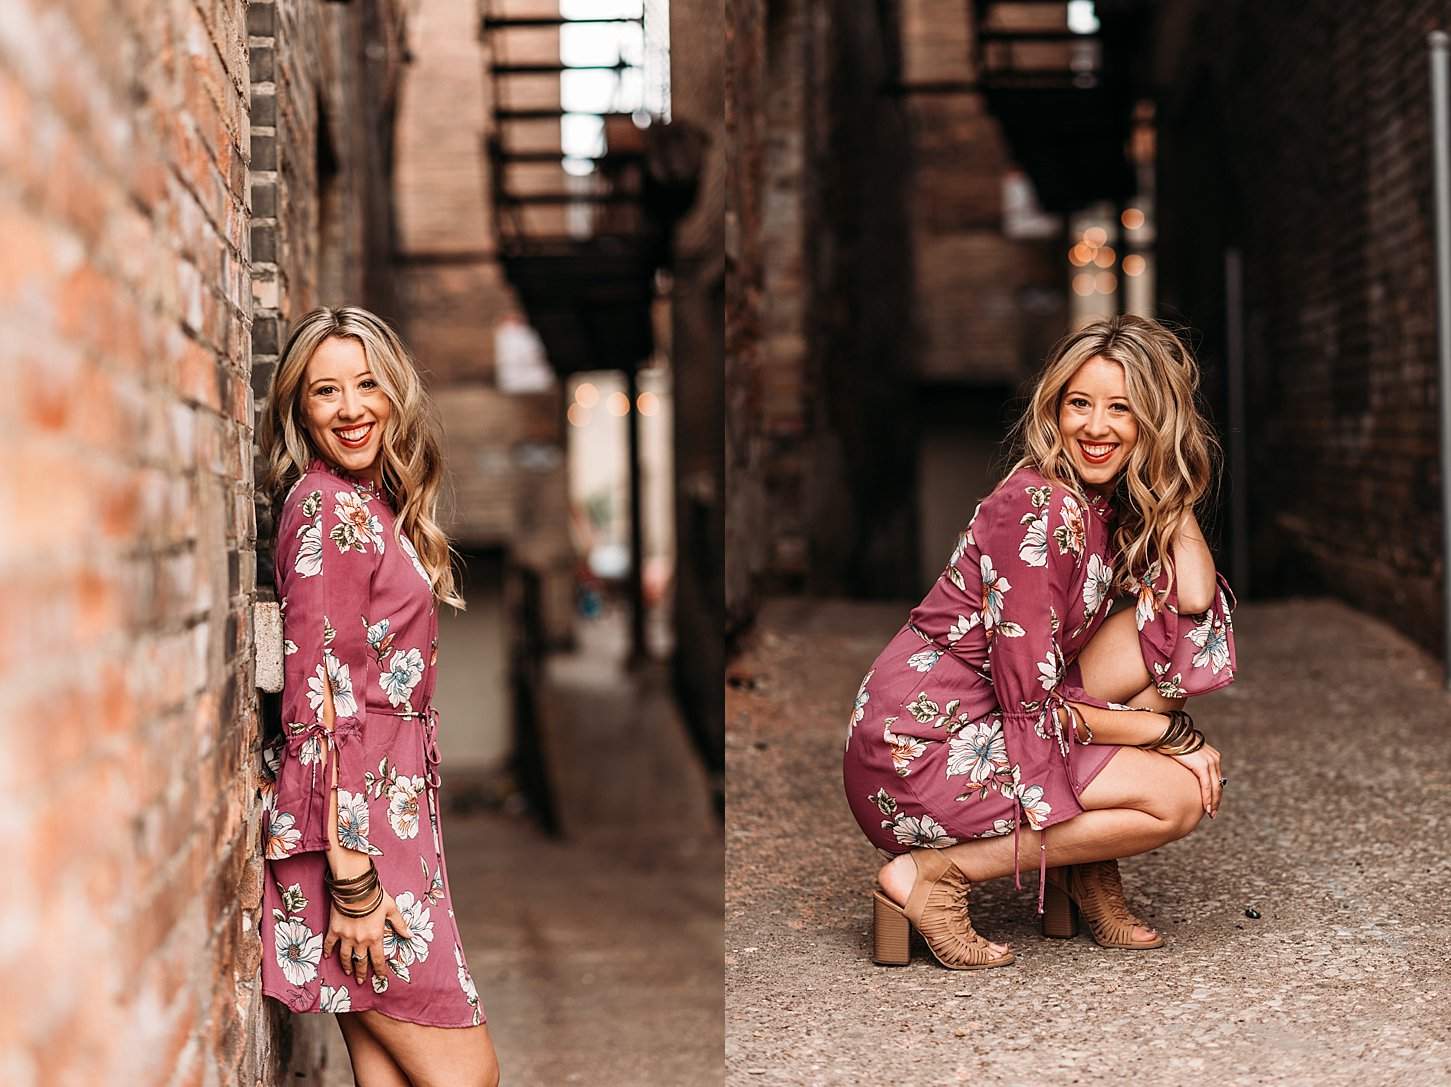 carlee secor photography branding session wedding photographer senior photographer headshots business